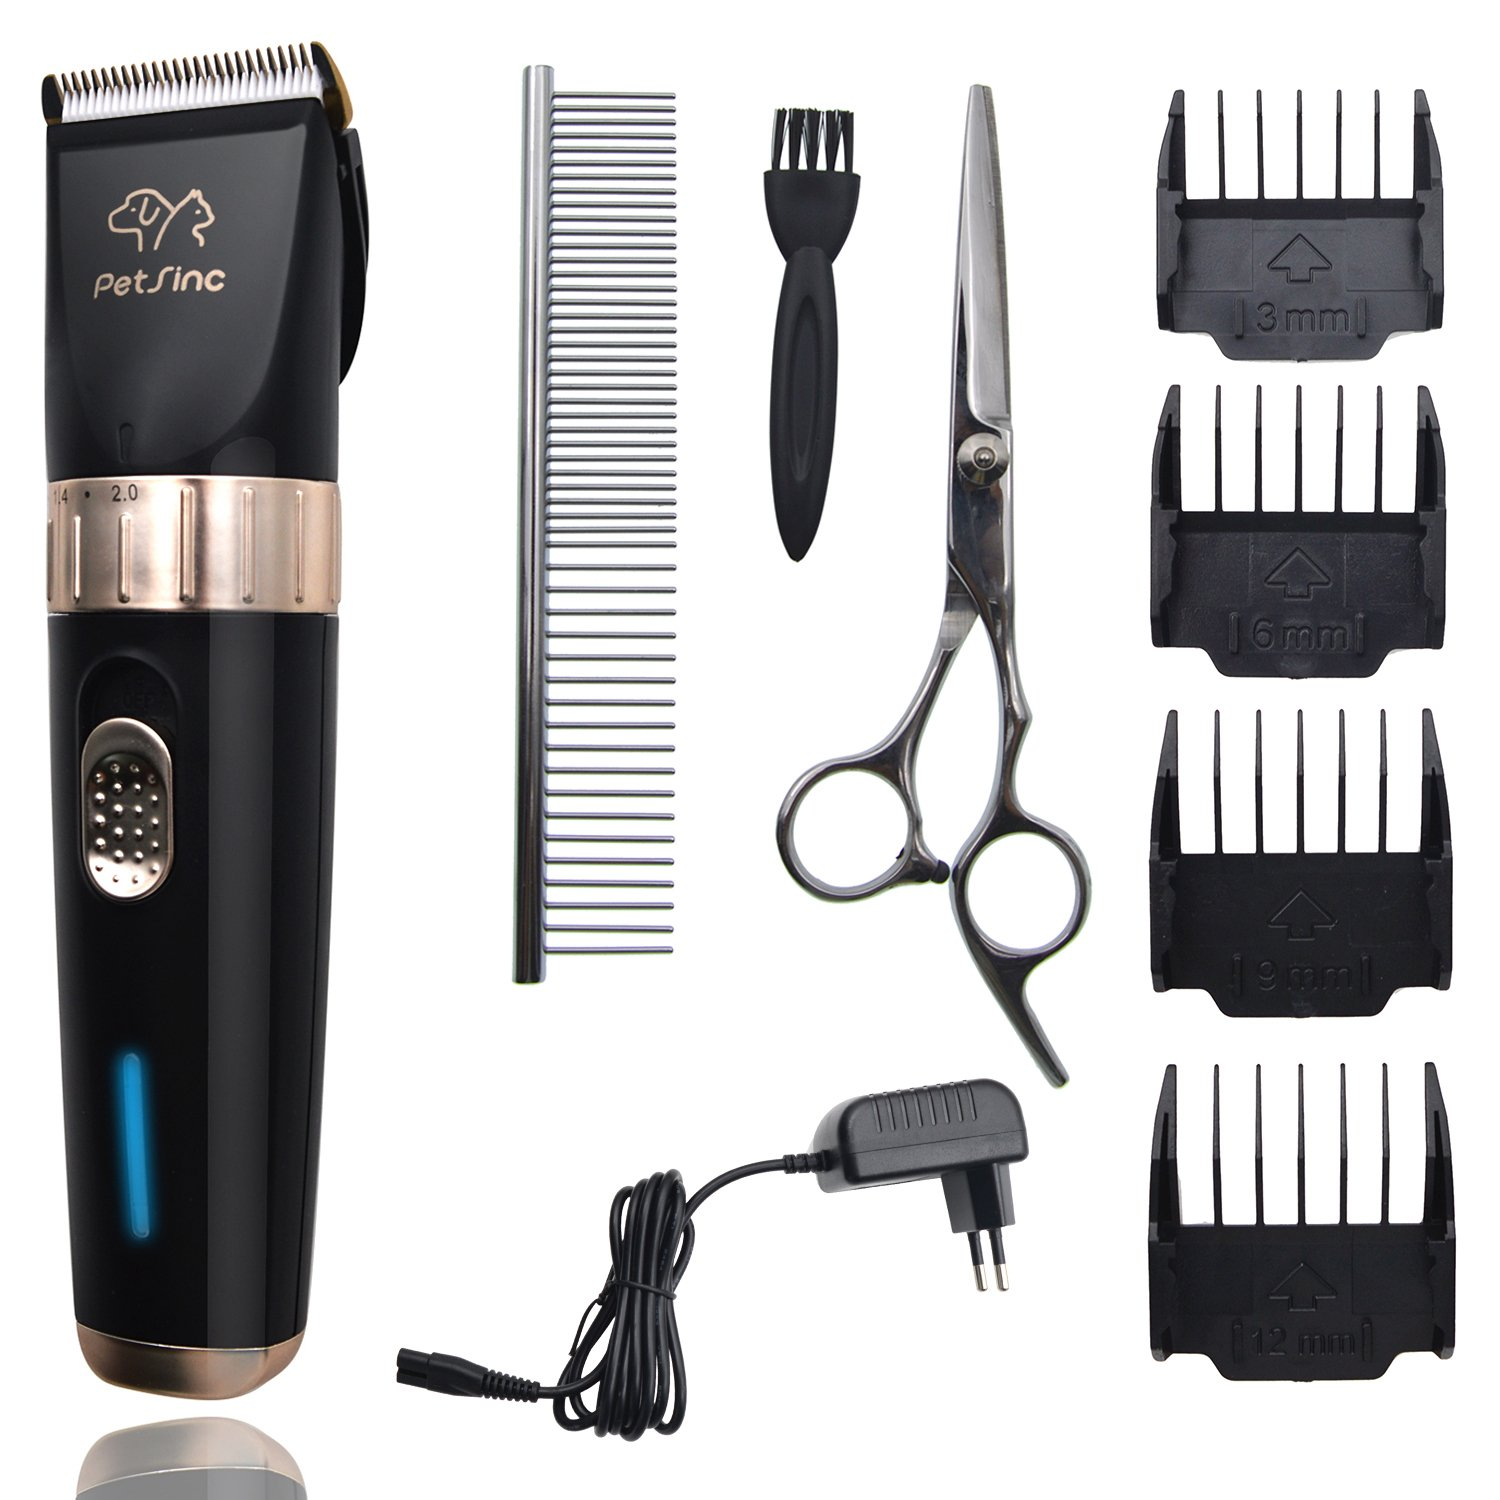 2-Speed Ceramics Pet Grooming Clippers PetSinc Professional Dog Grooming Clippers Kit for Dogs, Cats, Horses, Small Medium Large Animals Long Time Use Rechargeable 2000mAh Li-ion Battery